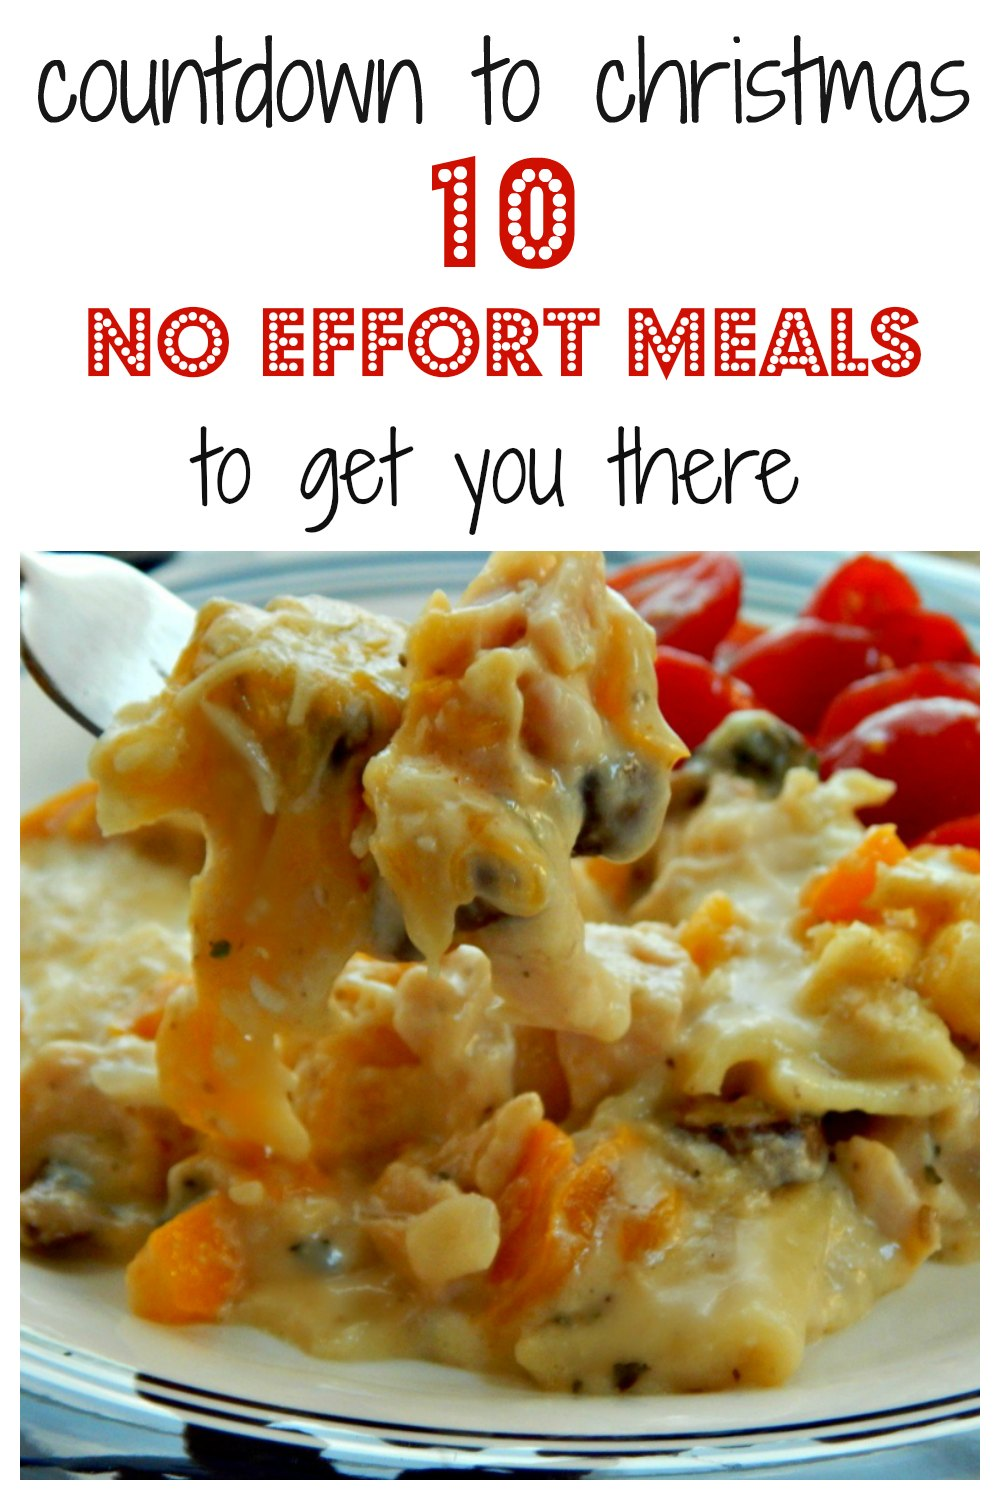 10 No Effort Meals to Get You to the Holidays, when you're just too busy doing everything else to hardly think about dinner! All fast, using mostly pantry ingredients, most kid friendly (that SO depends on your kids!) All tried and true and delish!! #10EasyMeals, #10KidFriendlyMeals #NoEffortMeals